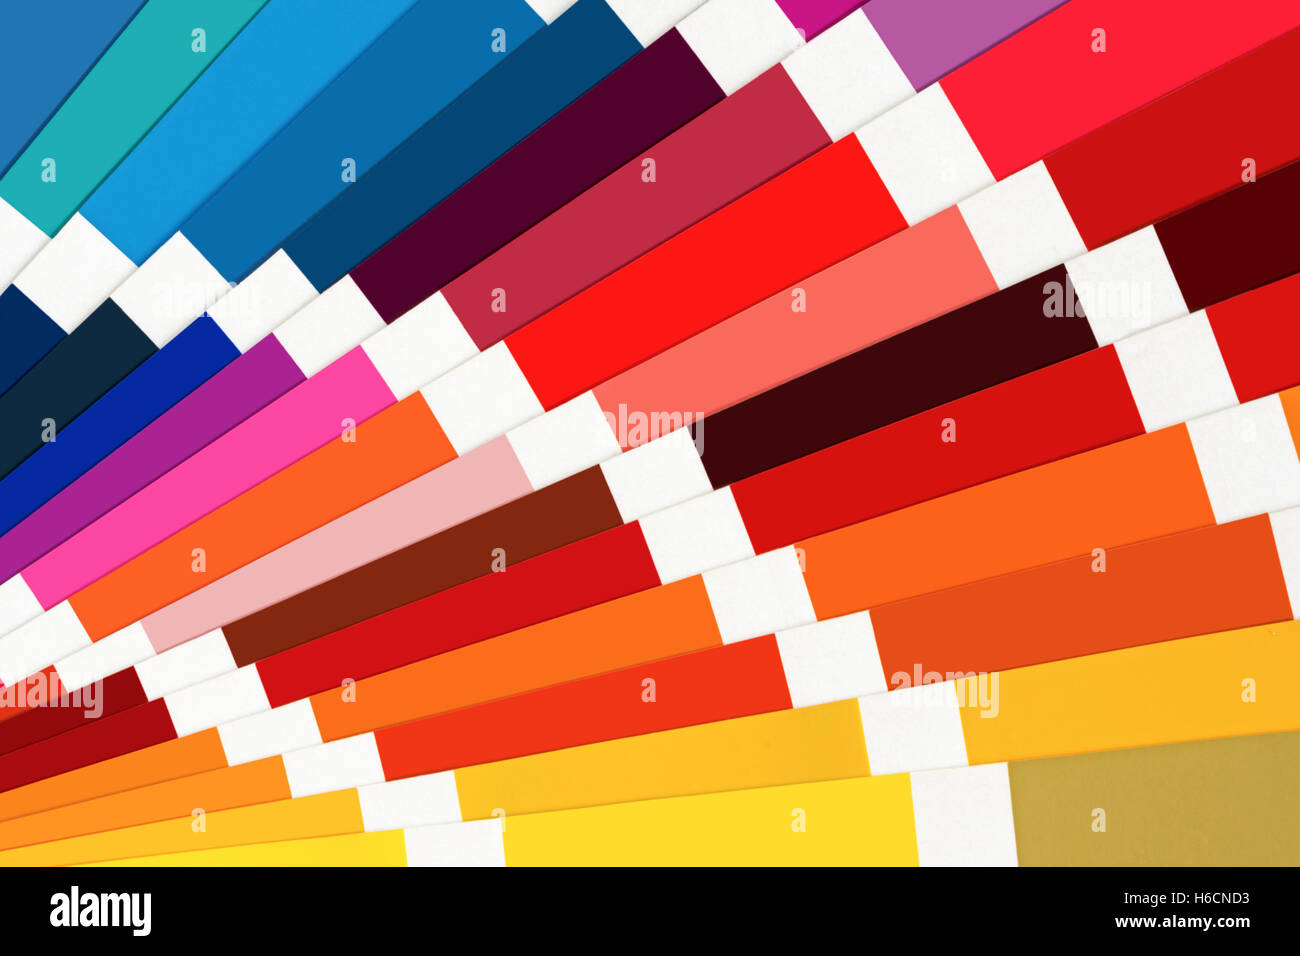 Color Pantone Swatches Stock Photos & Color Pantone Swatches Stock ...